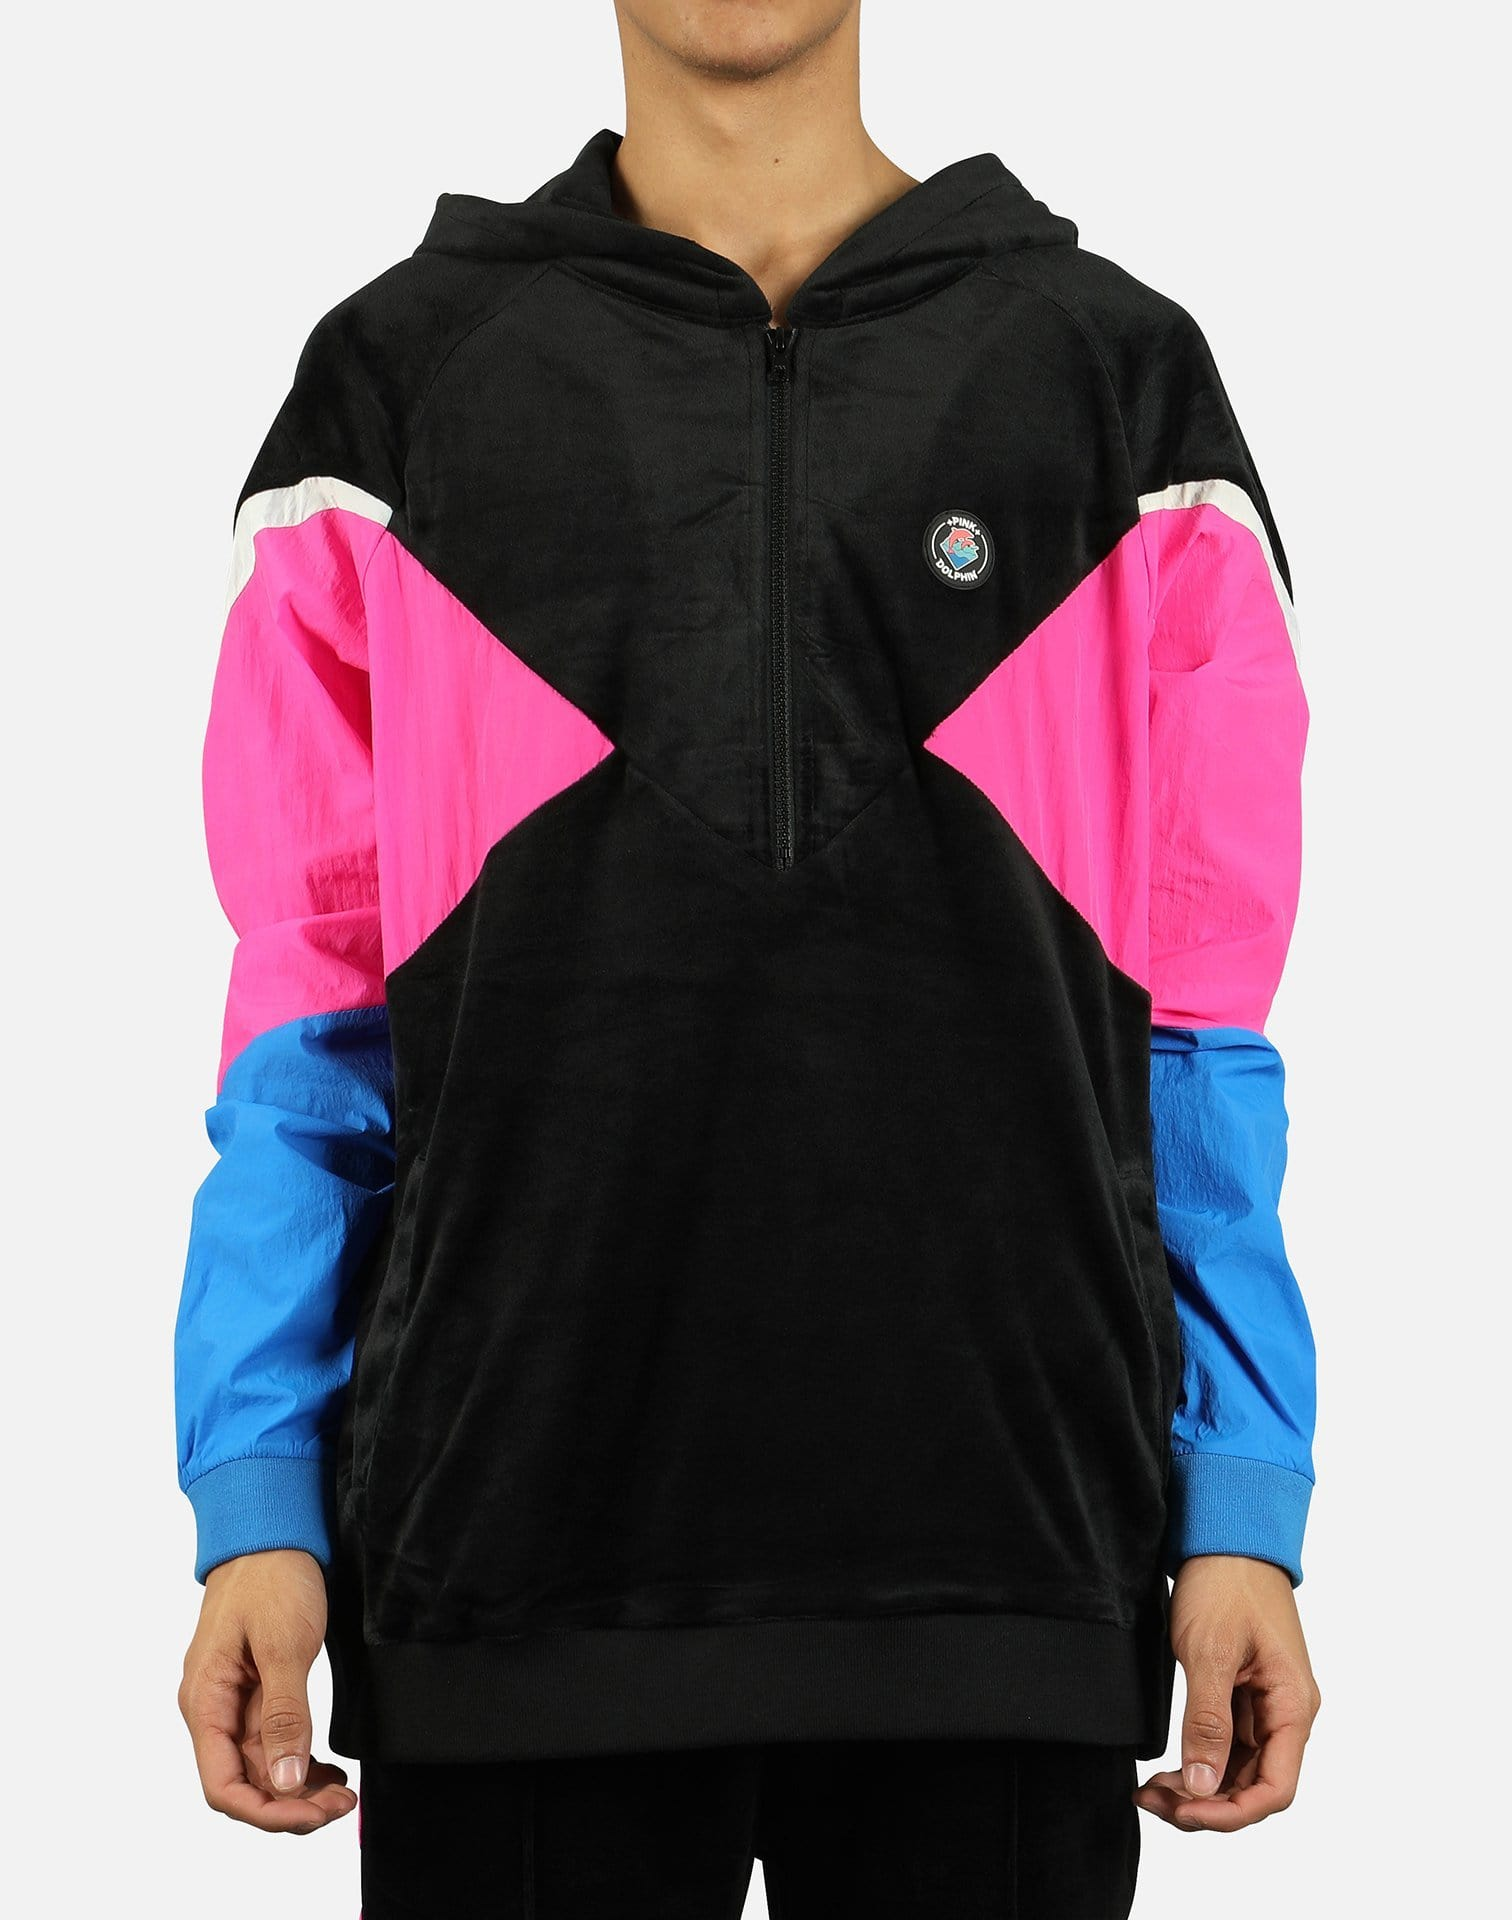 Pink Dolphin Men's SMU Tech Velour Jacket 3.0